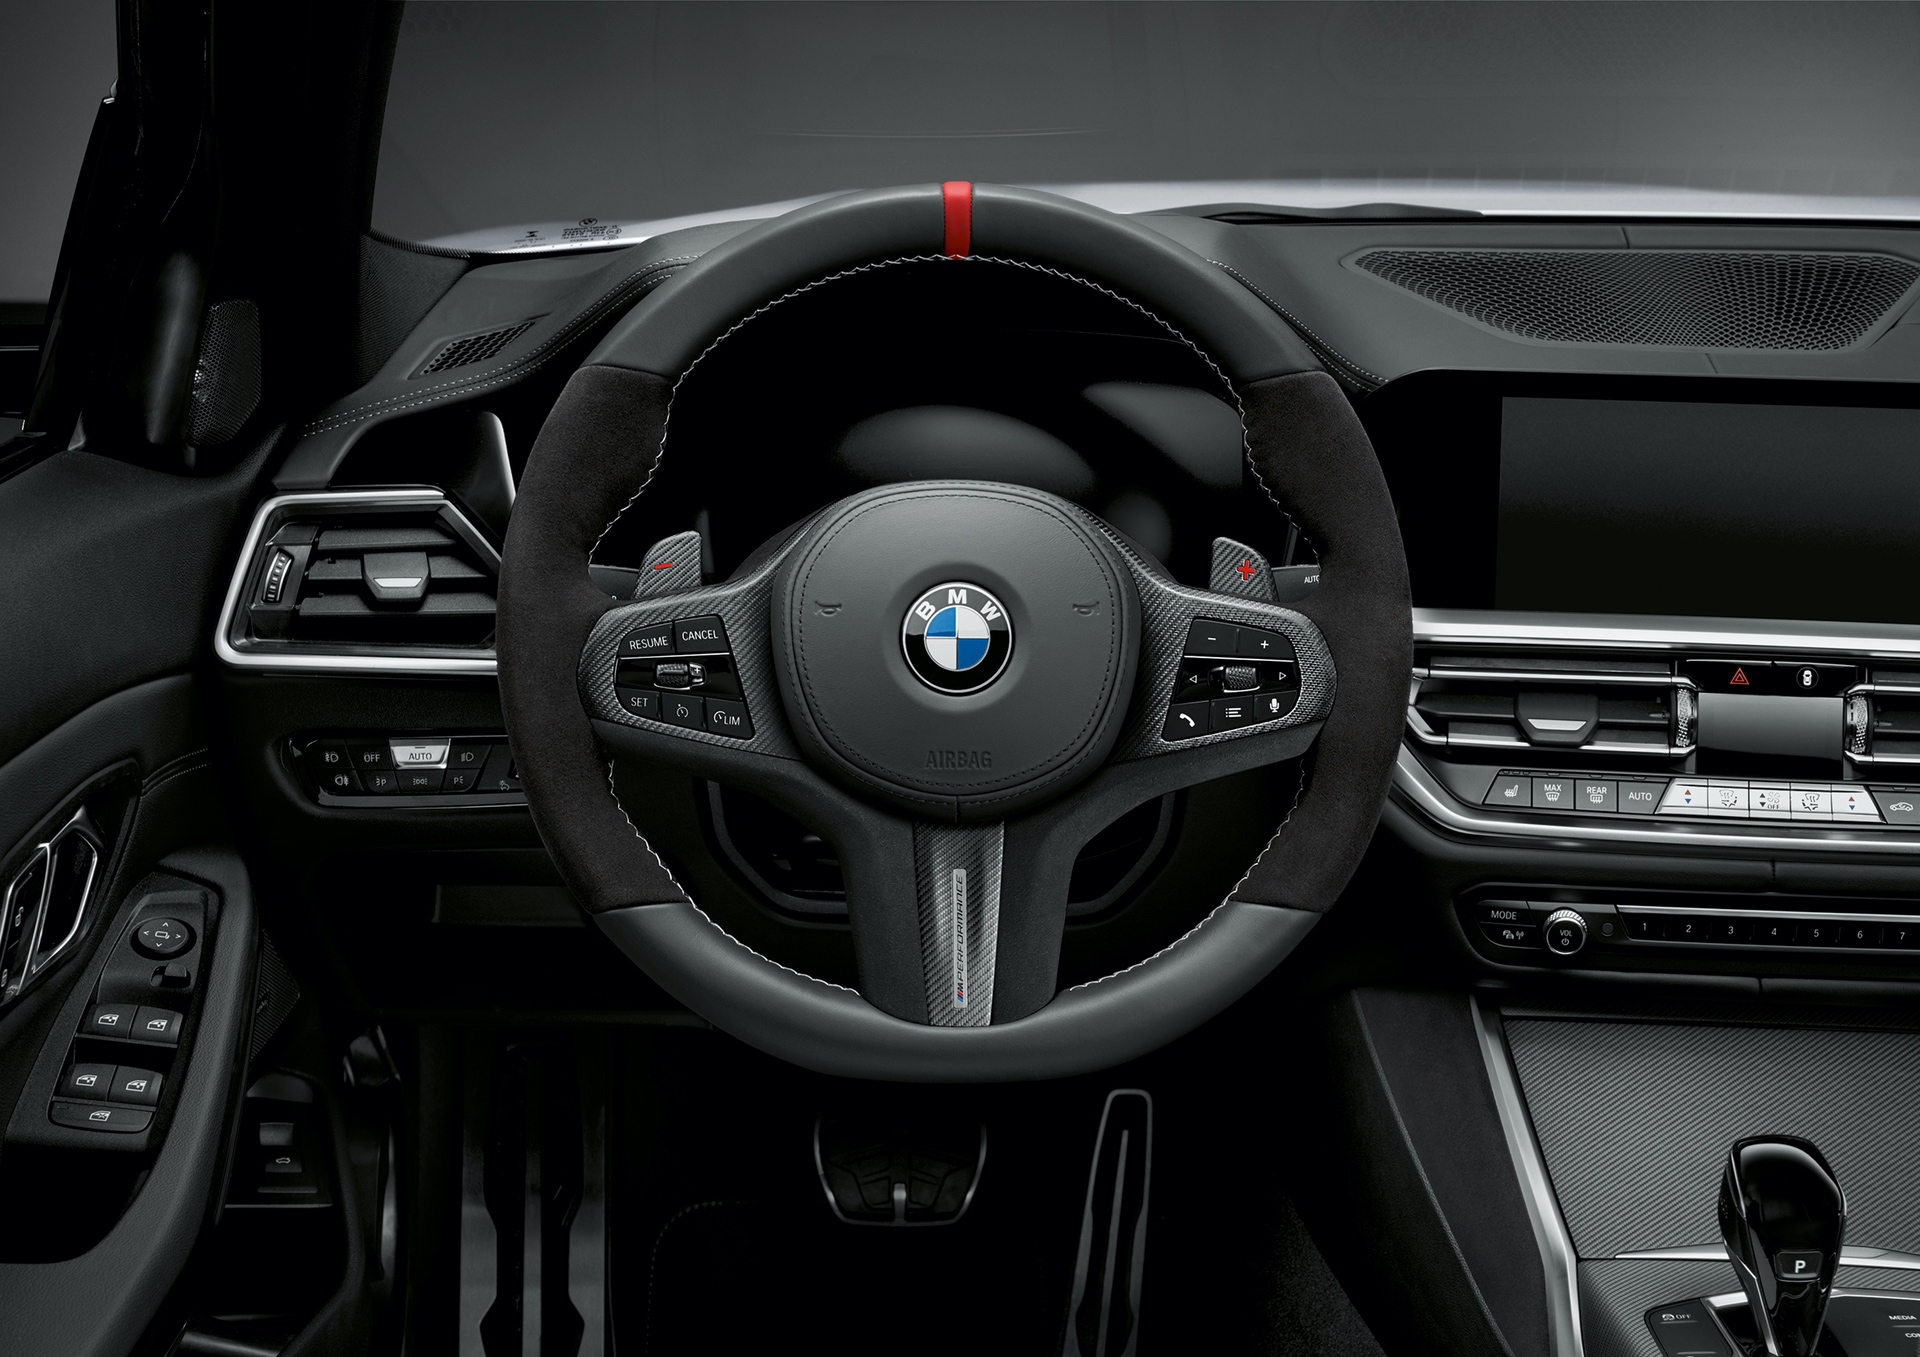 BMW 8 Series Gran Coupe, 3 Series Touring and X1 LCI gets